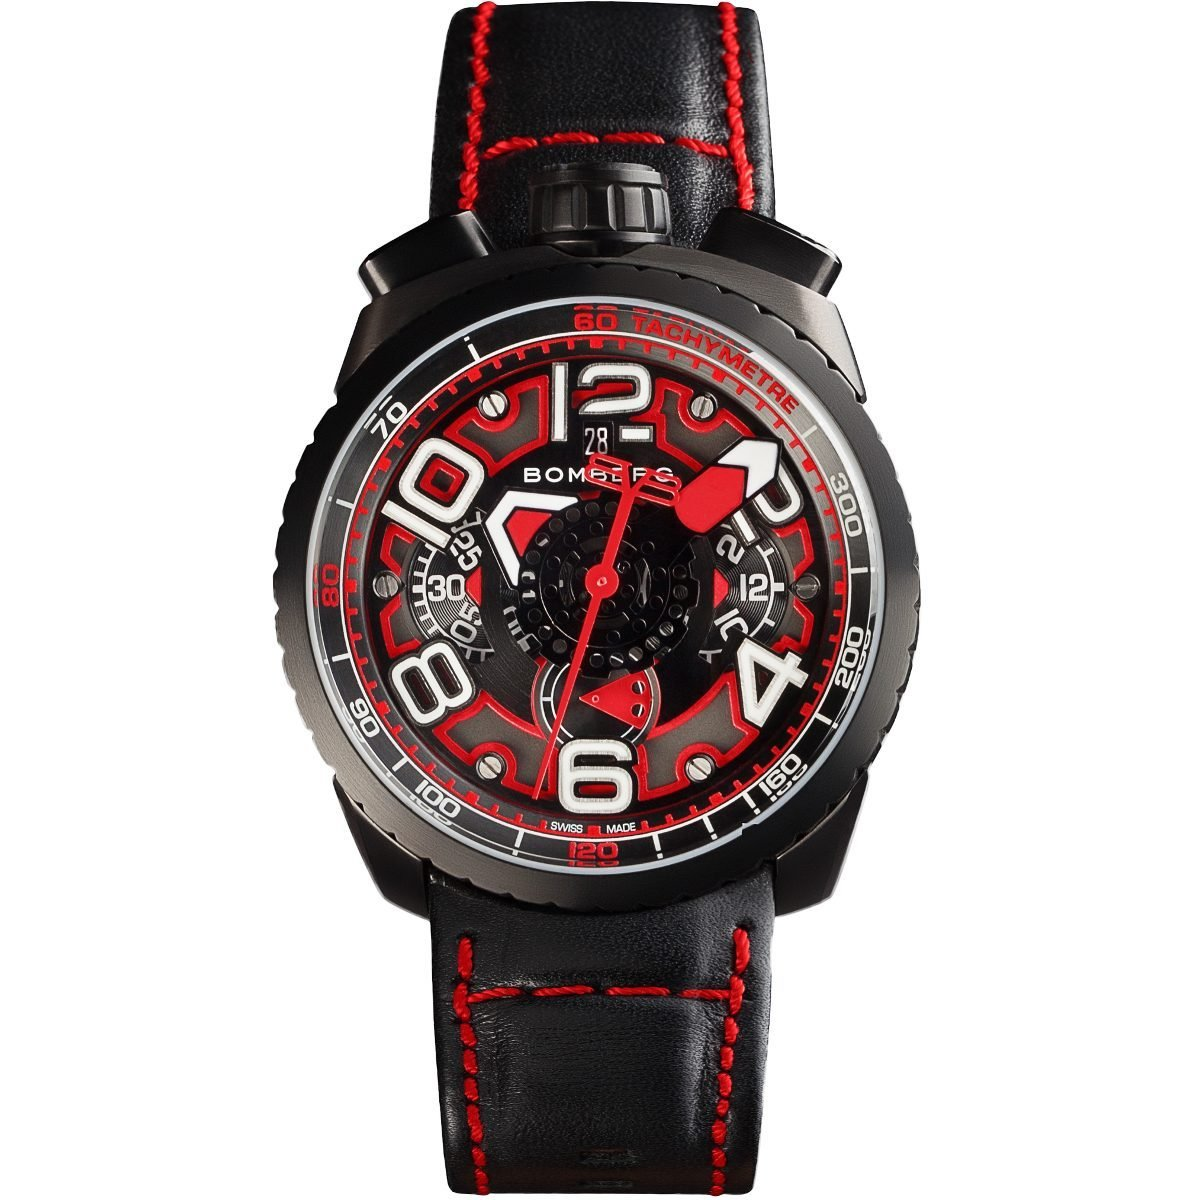 Bomberg BOLT-68 Automatic Chronograph Black PVD